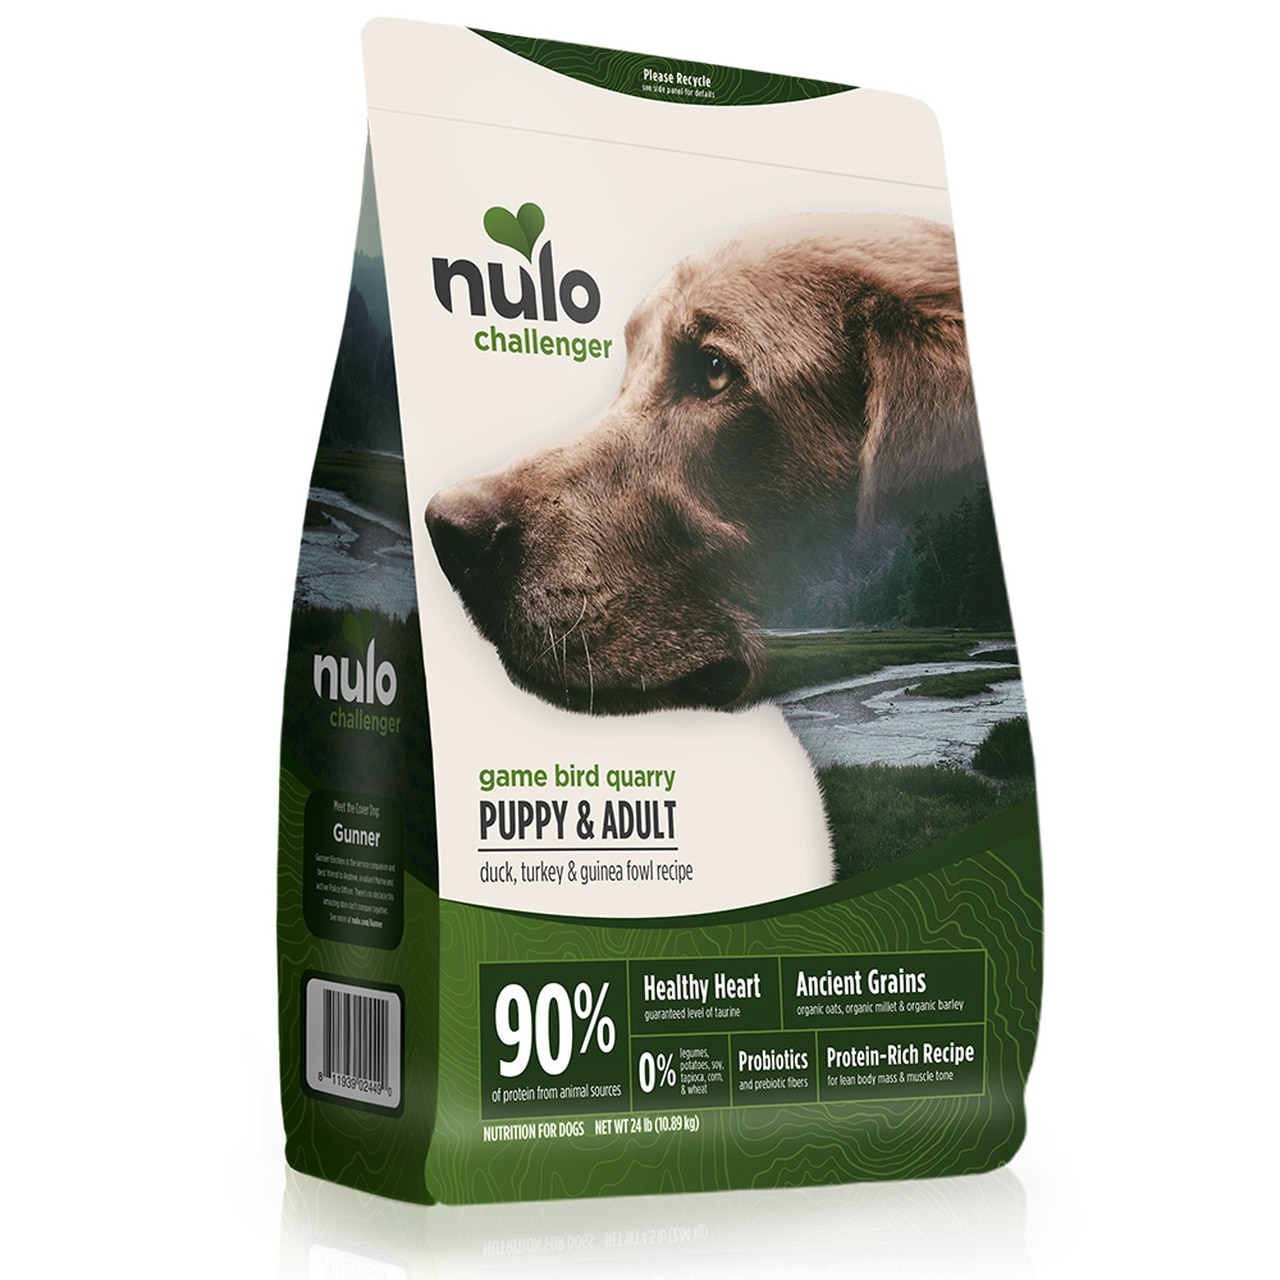 Nulo Challenger Game Bird Quarry Duck, Turkey & Guinea Fowl Puppy & Adult Dry Dog Food Image